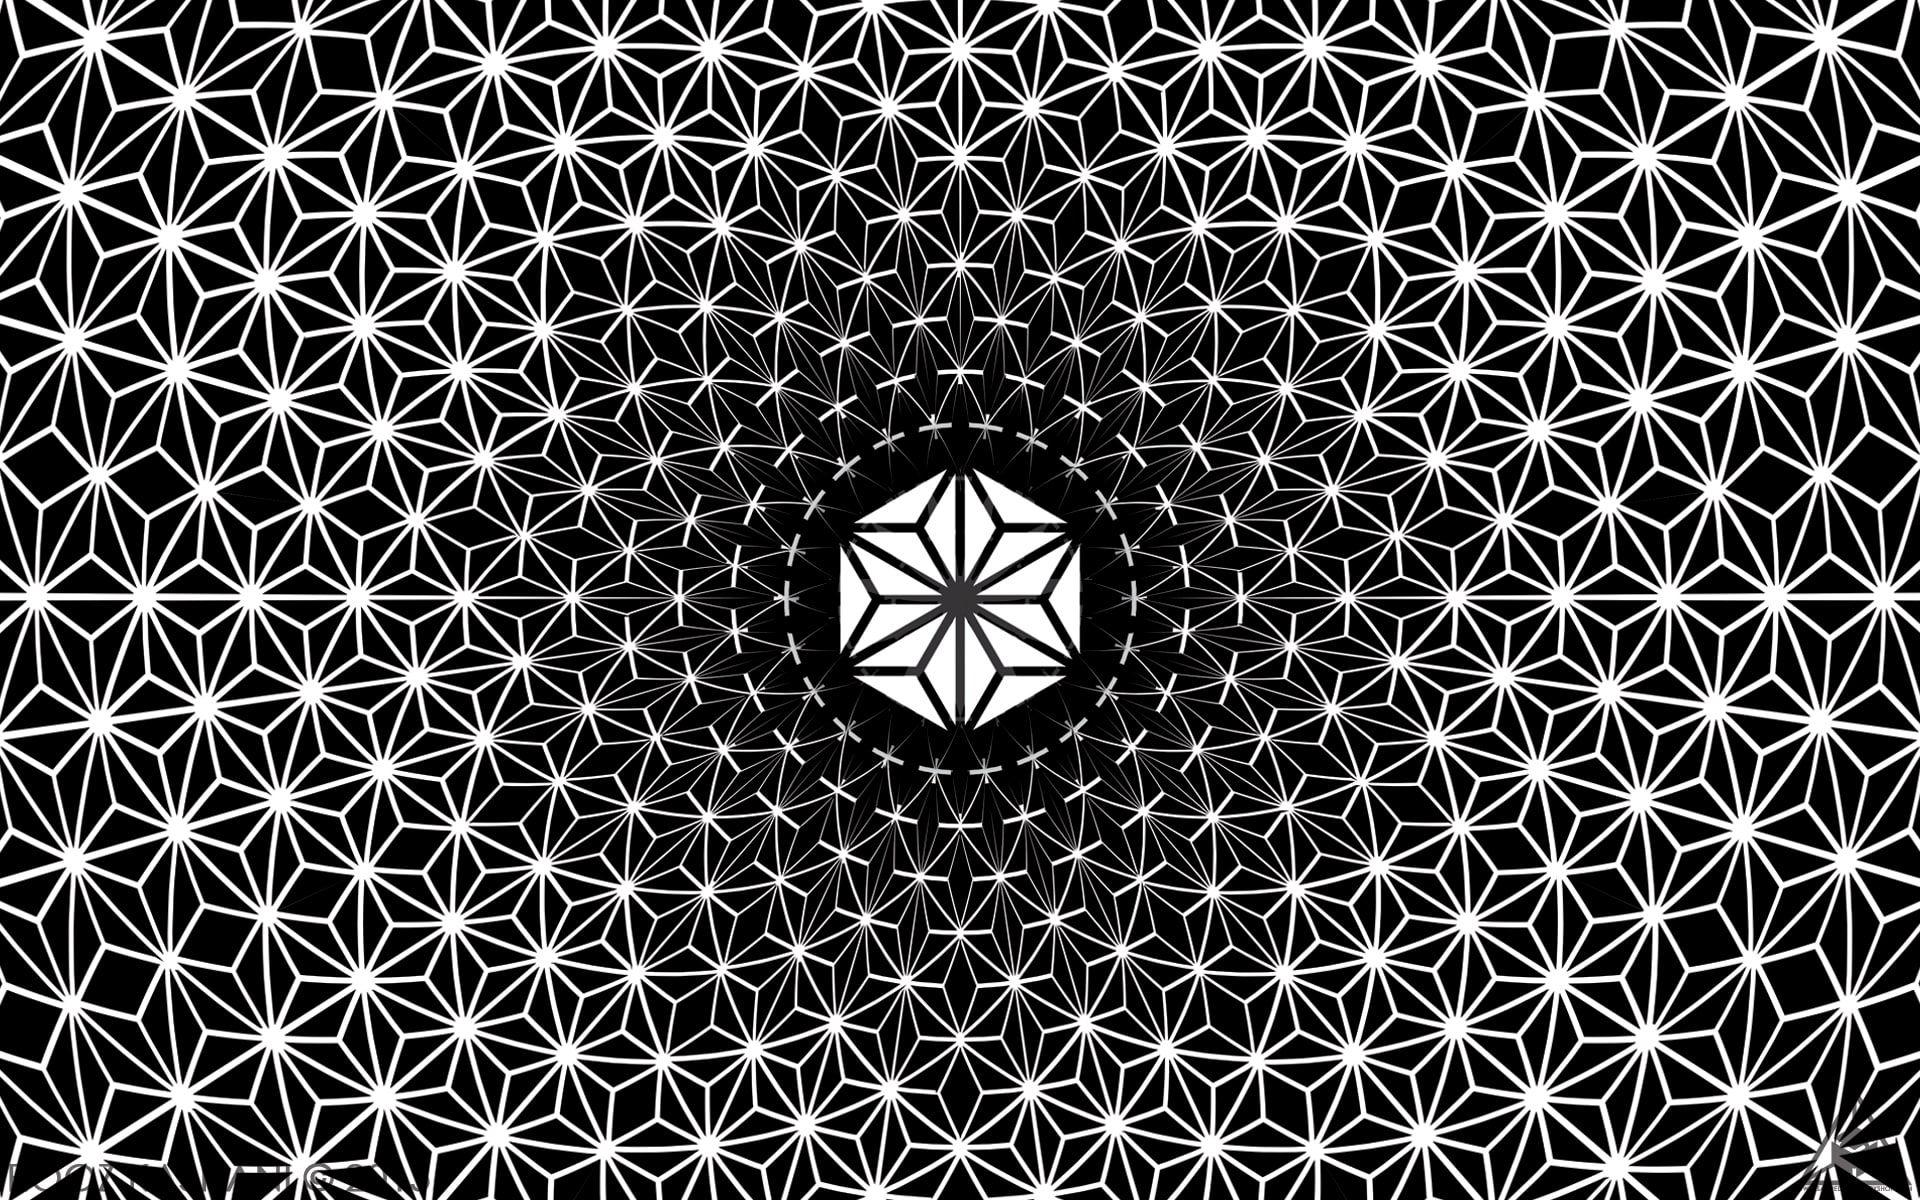 sacred geometry wallpaper images (41) - HD Wallpapers Buzz